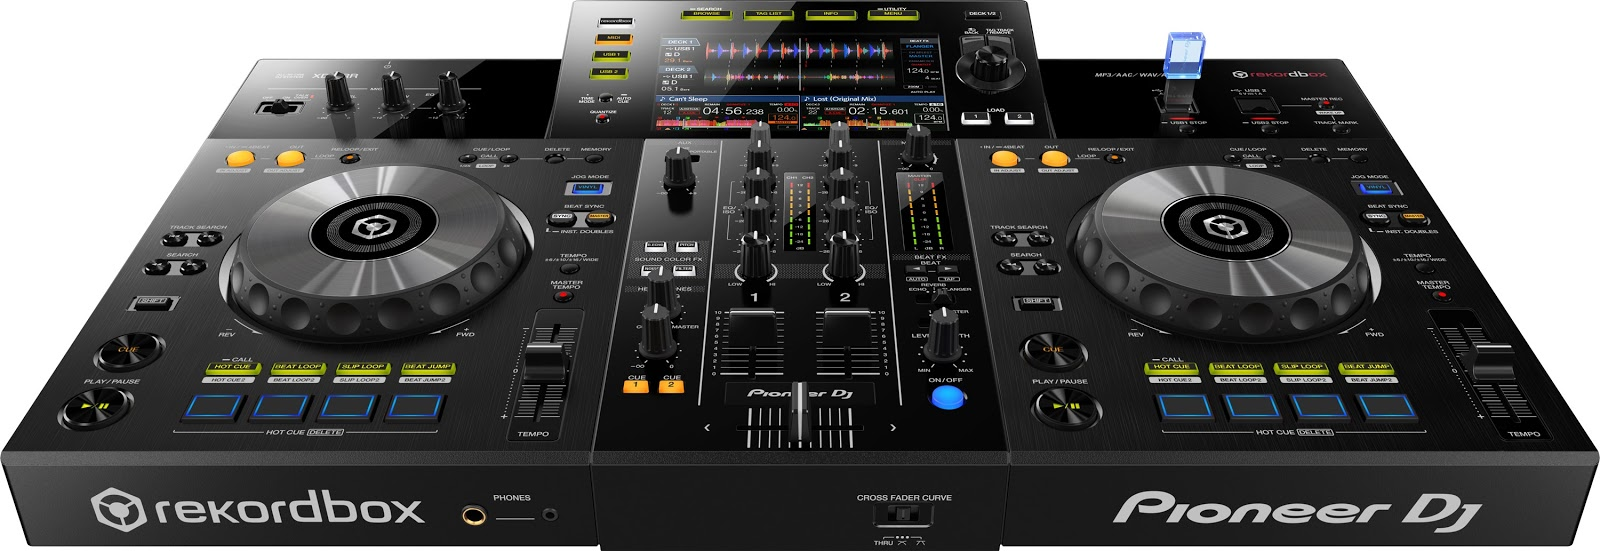 Official Malaysia Leading Dj Musician Producerdj Equipment Machine Diagram Further Pioneer Speakers On Wiring A Guitar Speaker Jack Xdj Rr All In One System For Rekordbox Coming Store End Of September Or Early October 2018